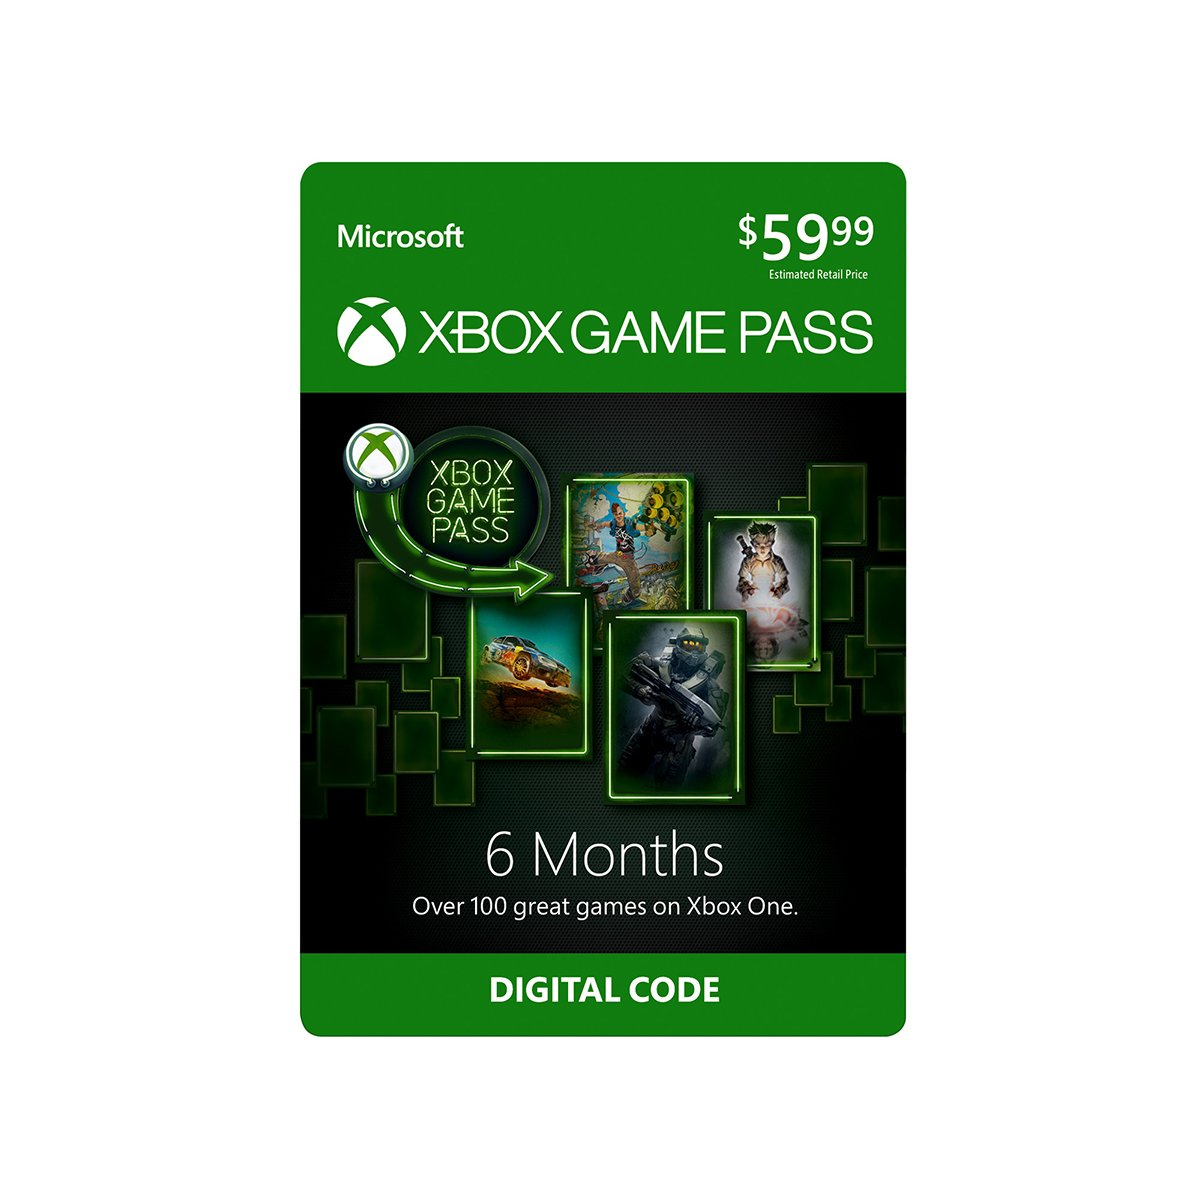 Xbox Game Pass: 6 Month Membership [Digital Code] by Microsoft (Image #1)